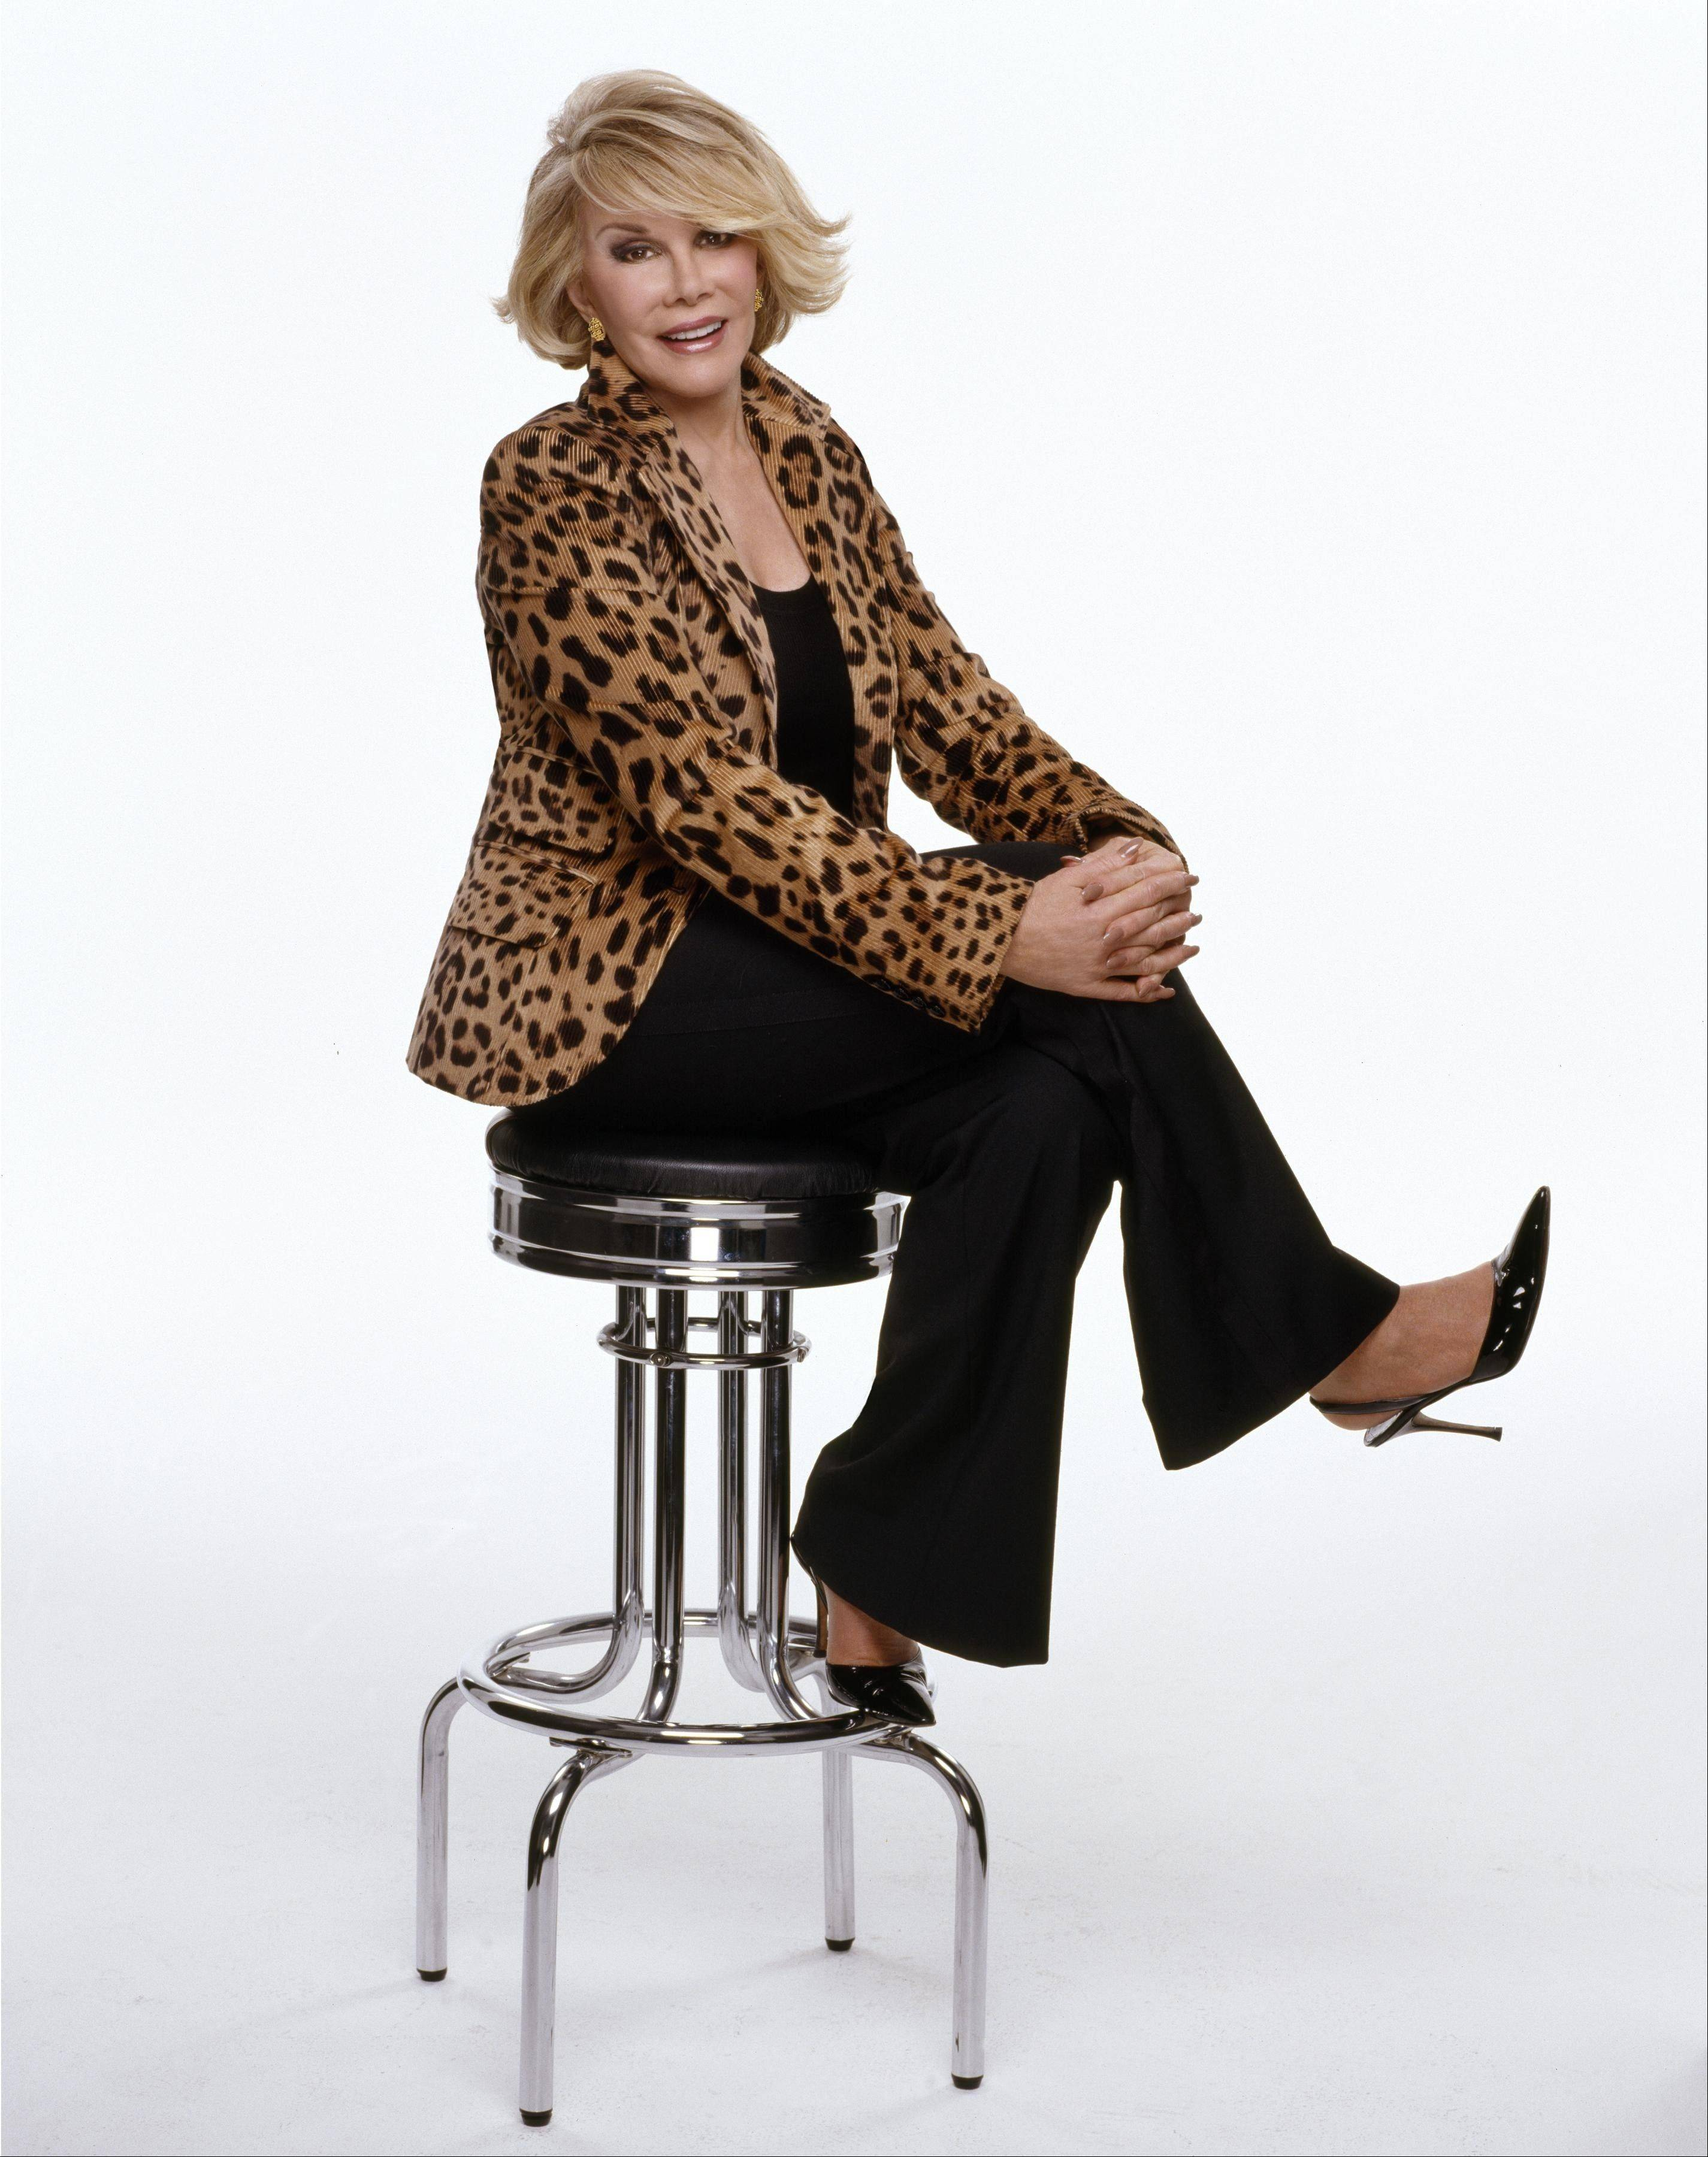 Joan Rivers' taped St. Charles appearance at the Arcada Theatre is now available on DVD.